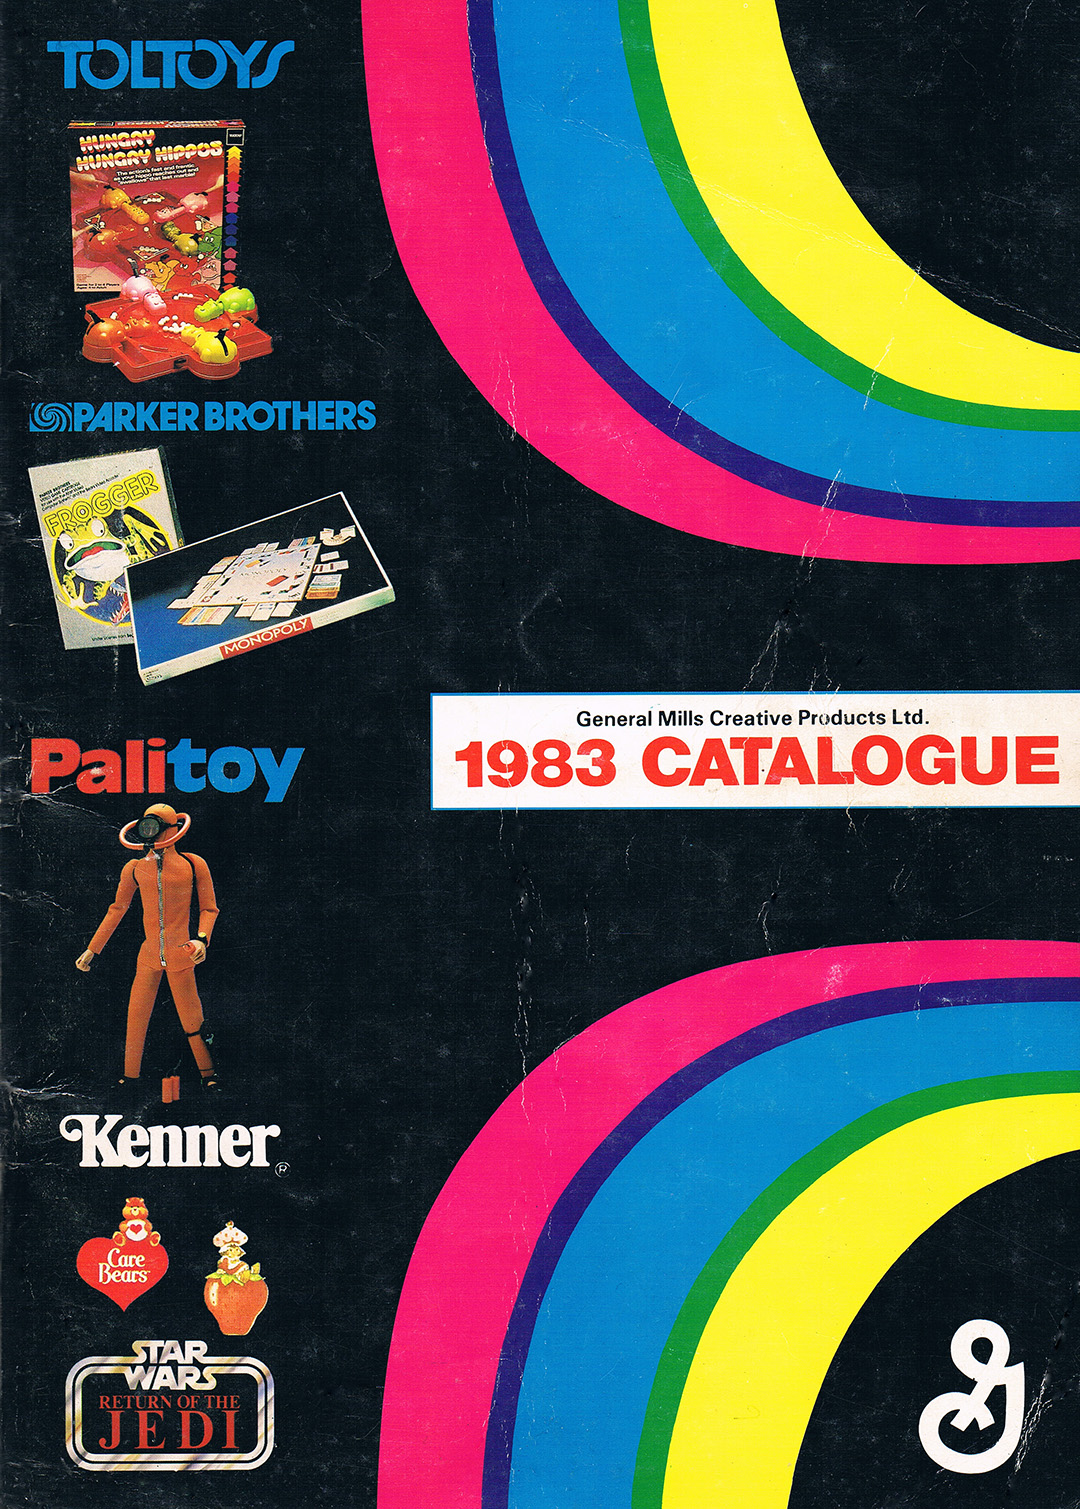 Toltoys/General Mills Creative Products Ltd 1983 Catalogue